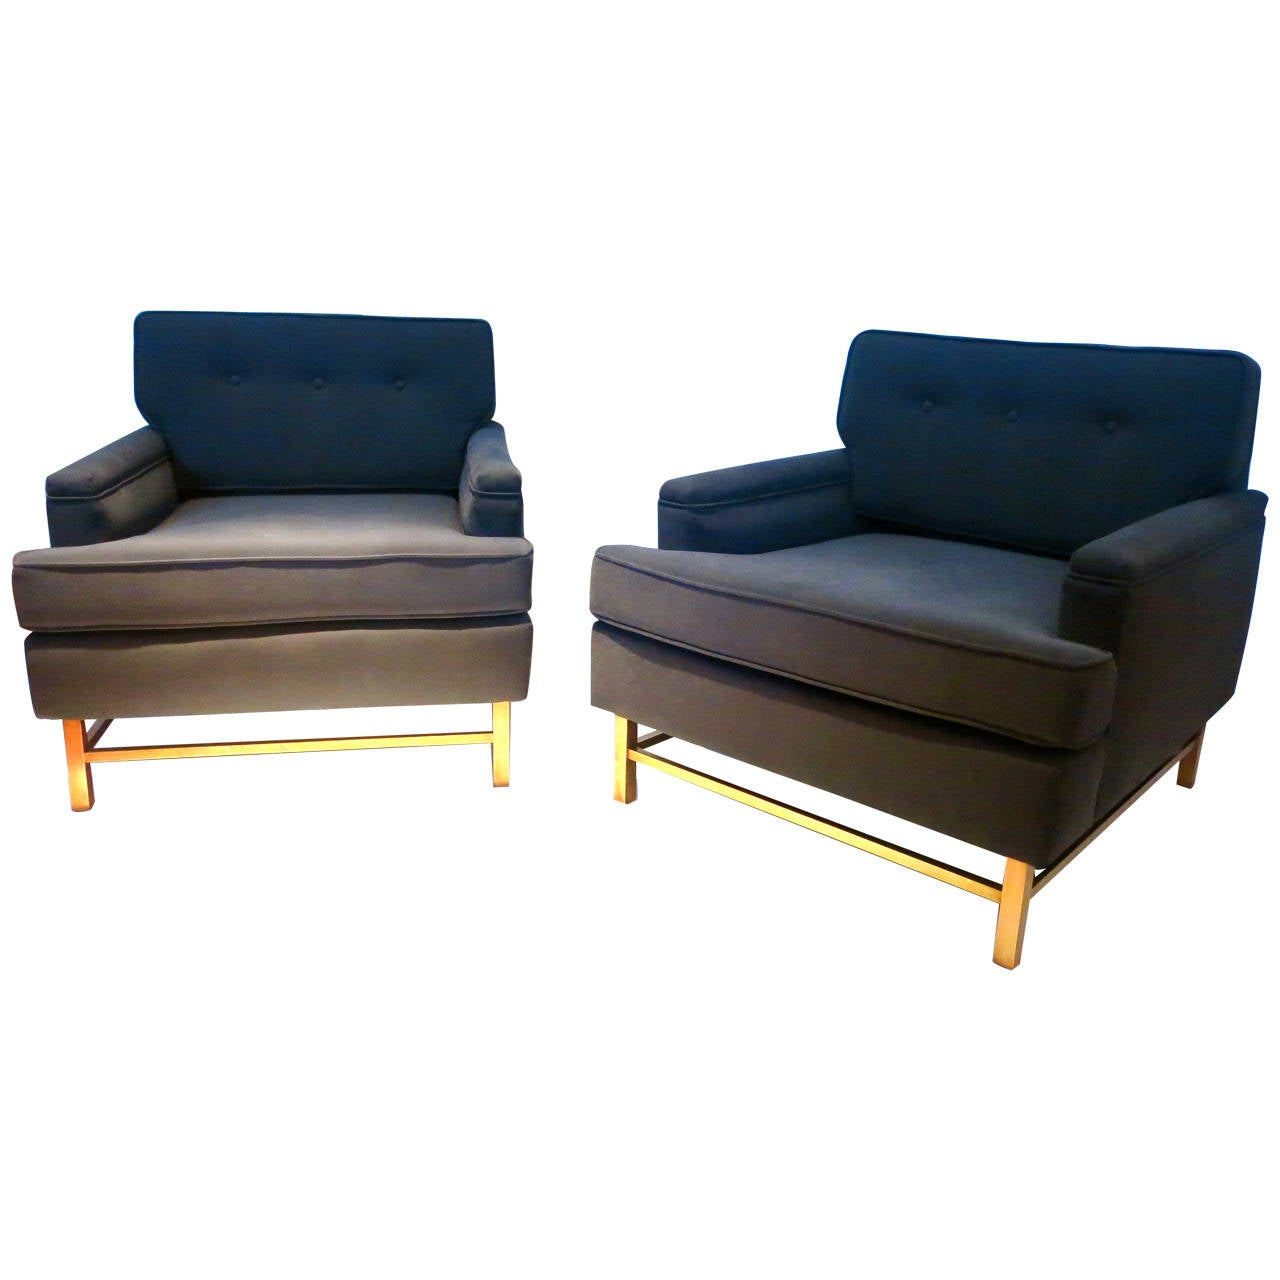 Pair Of Club Chairs By Martin Brattrud In Grey Fabric And